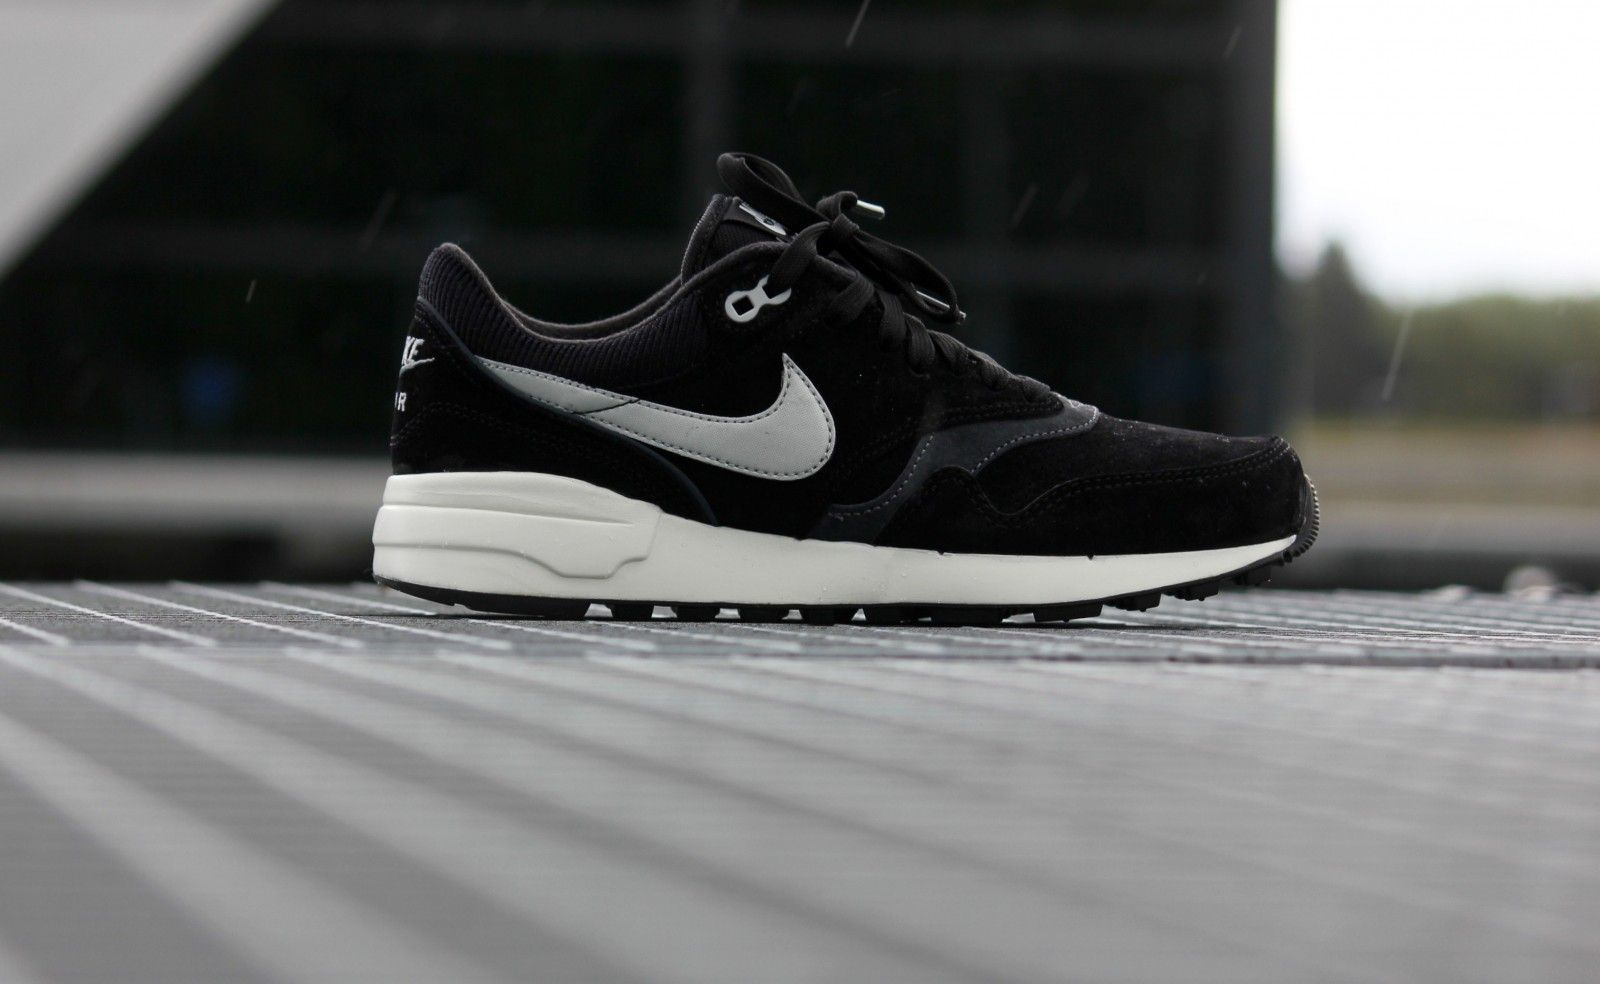 Nike Air Odyssey LTR Black/ Night Silver Anthracite 684773 005